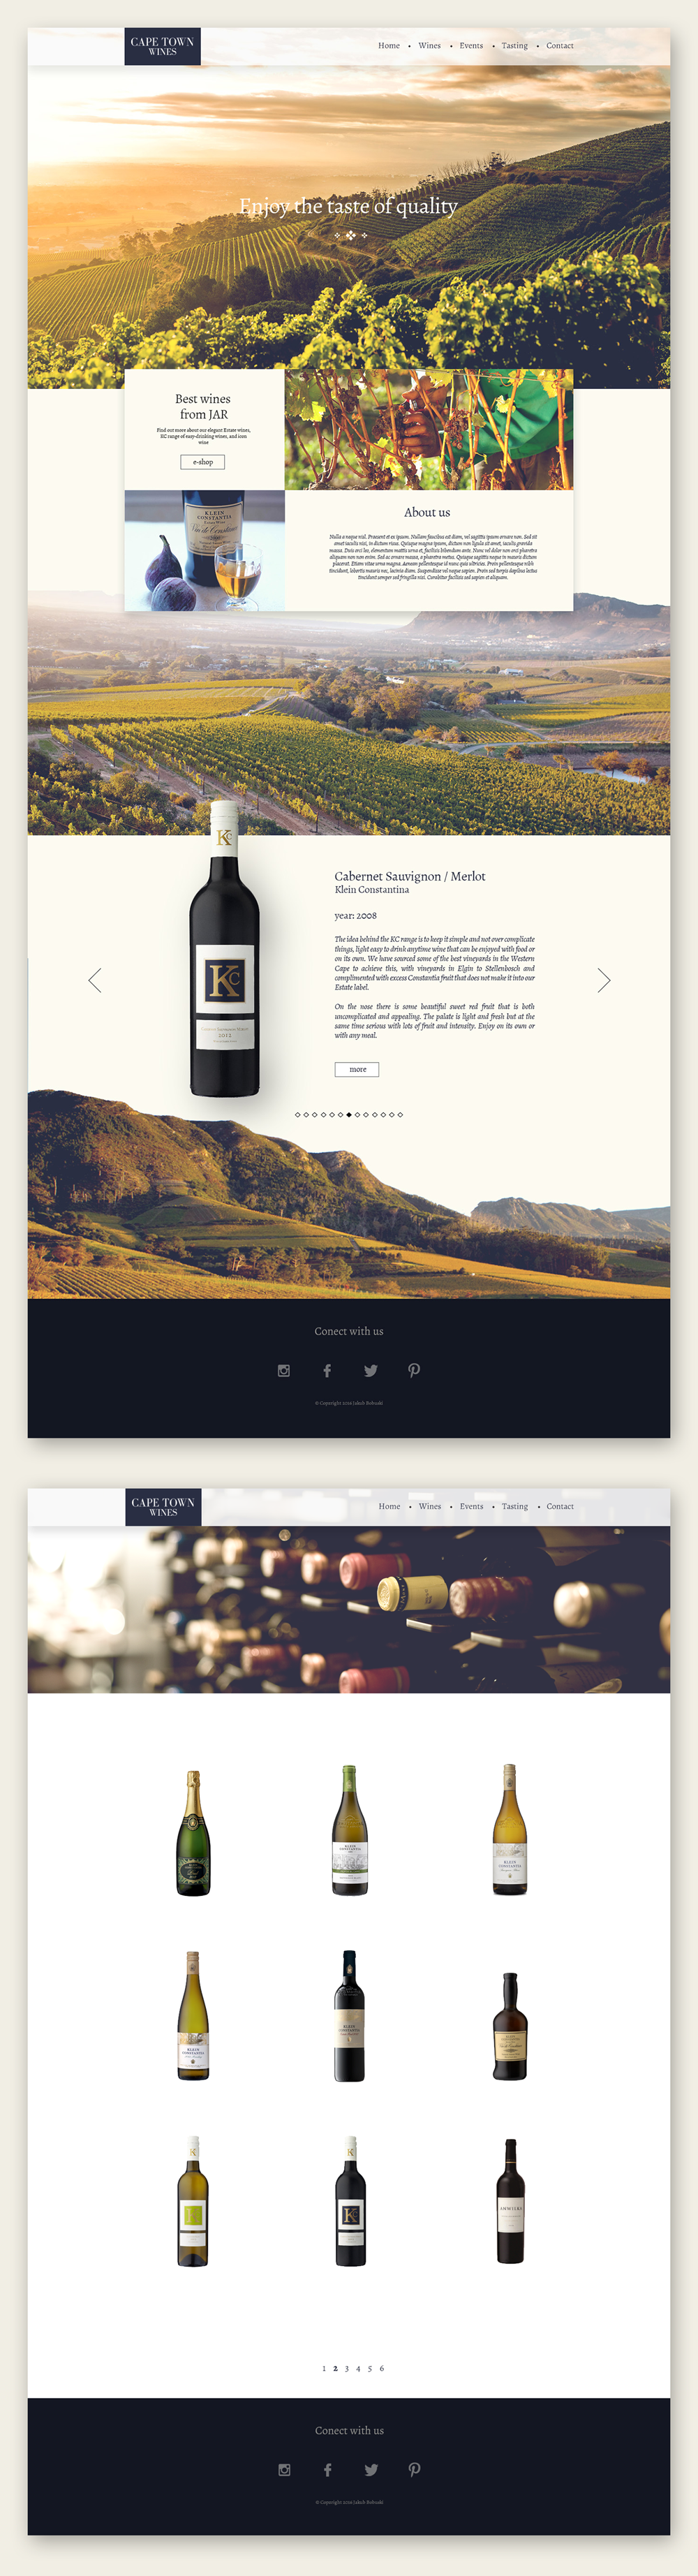 The Grey Hotel Cape Town Responsive Web Design Inspiration Hotel Cape Town Hotels